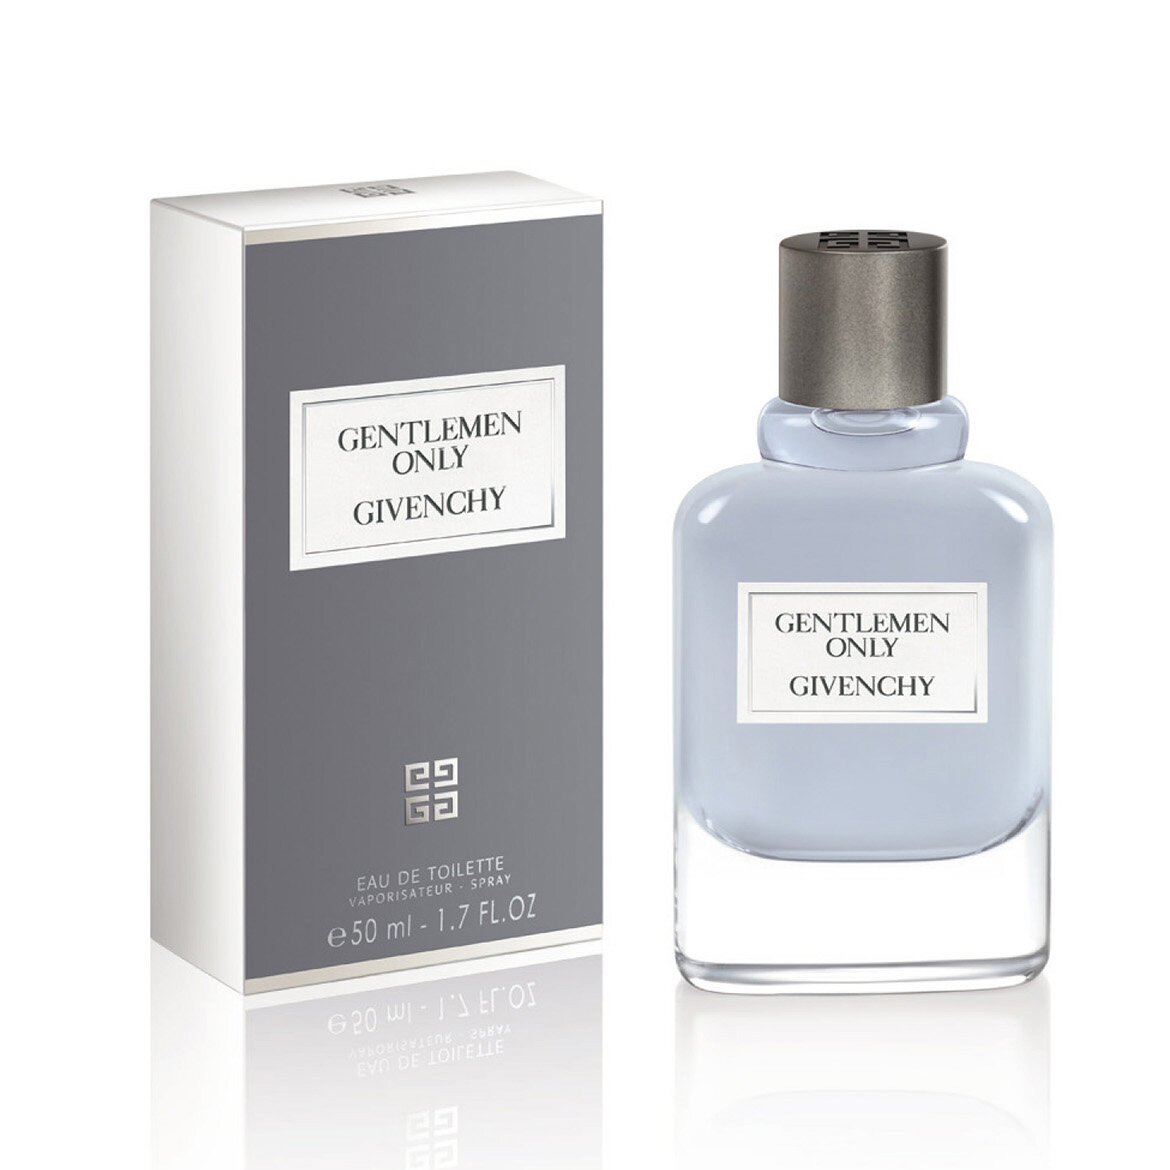 Givenchy GENTLEMAN ONLY LUXE men